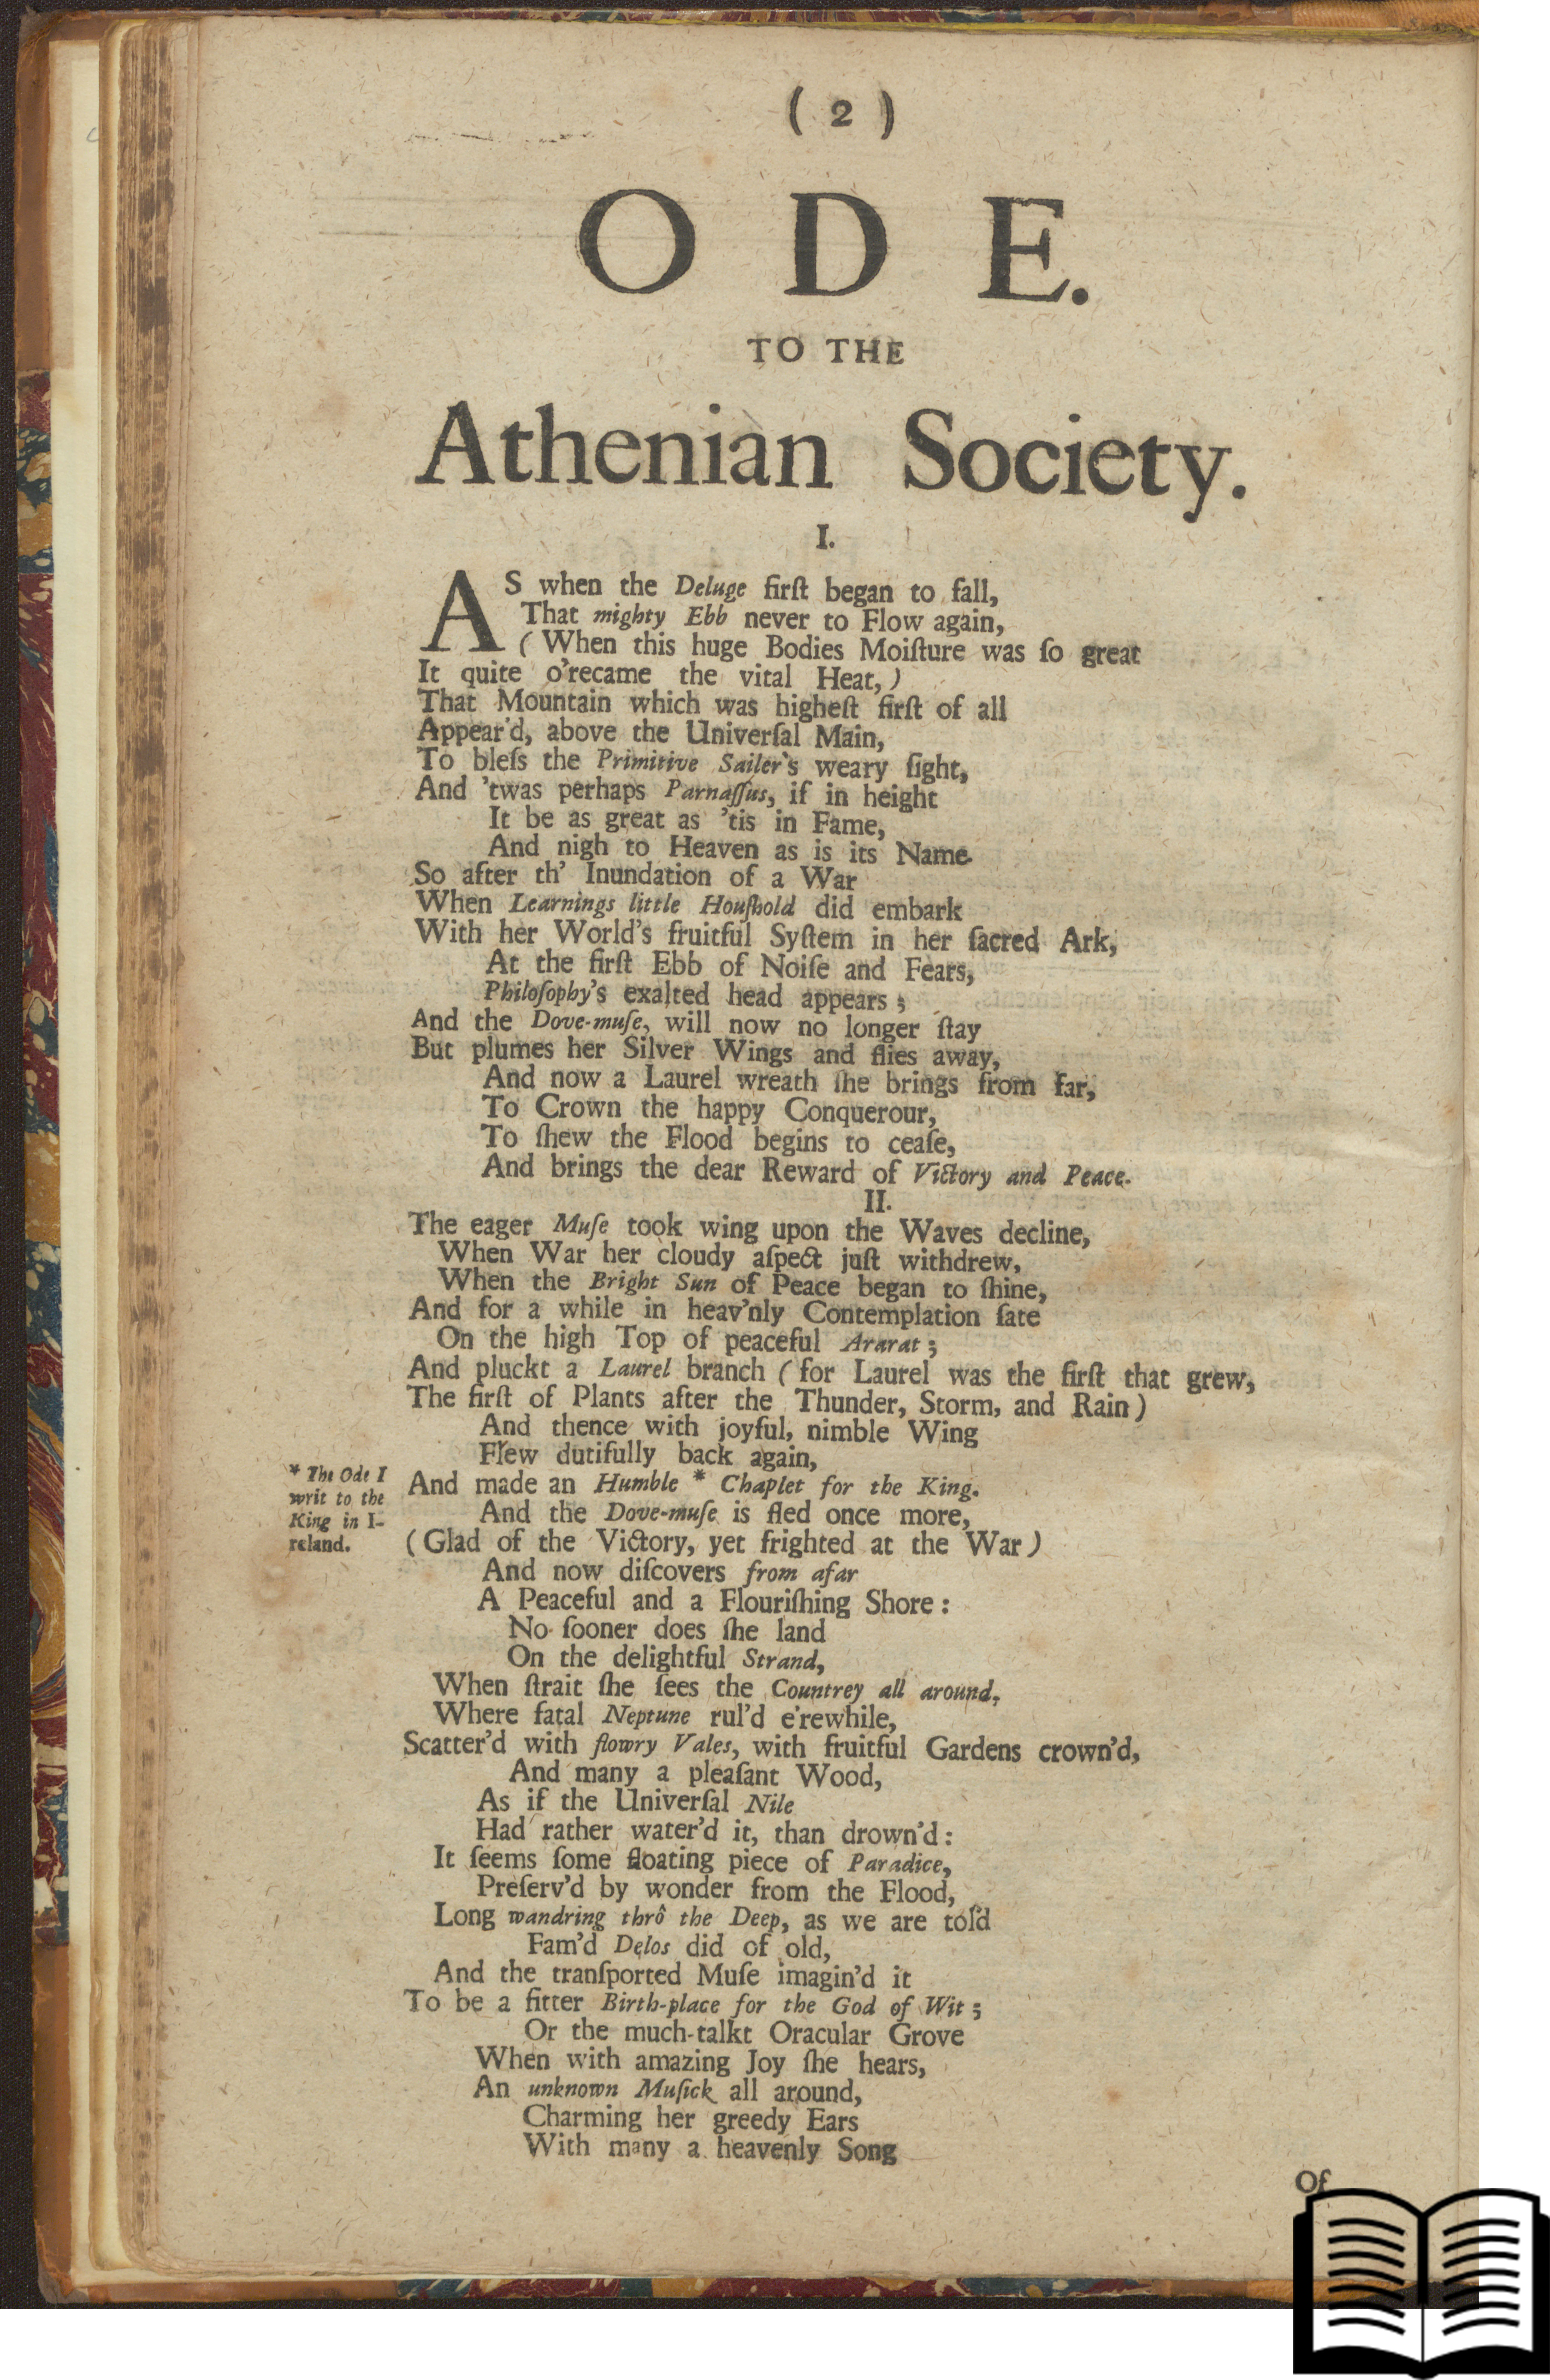 Ode to the Athenian Society